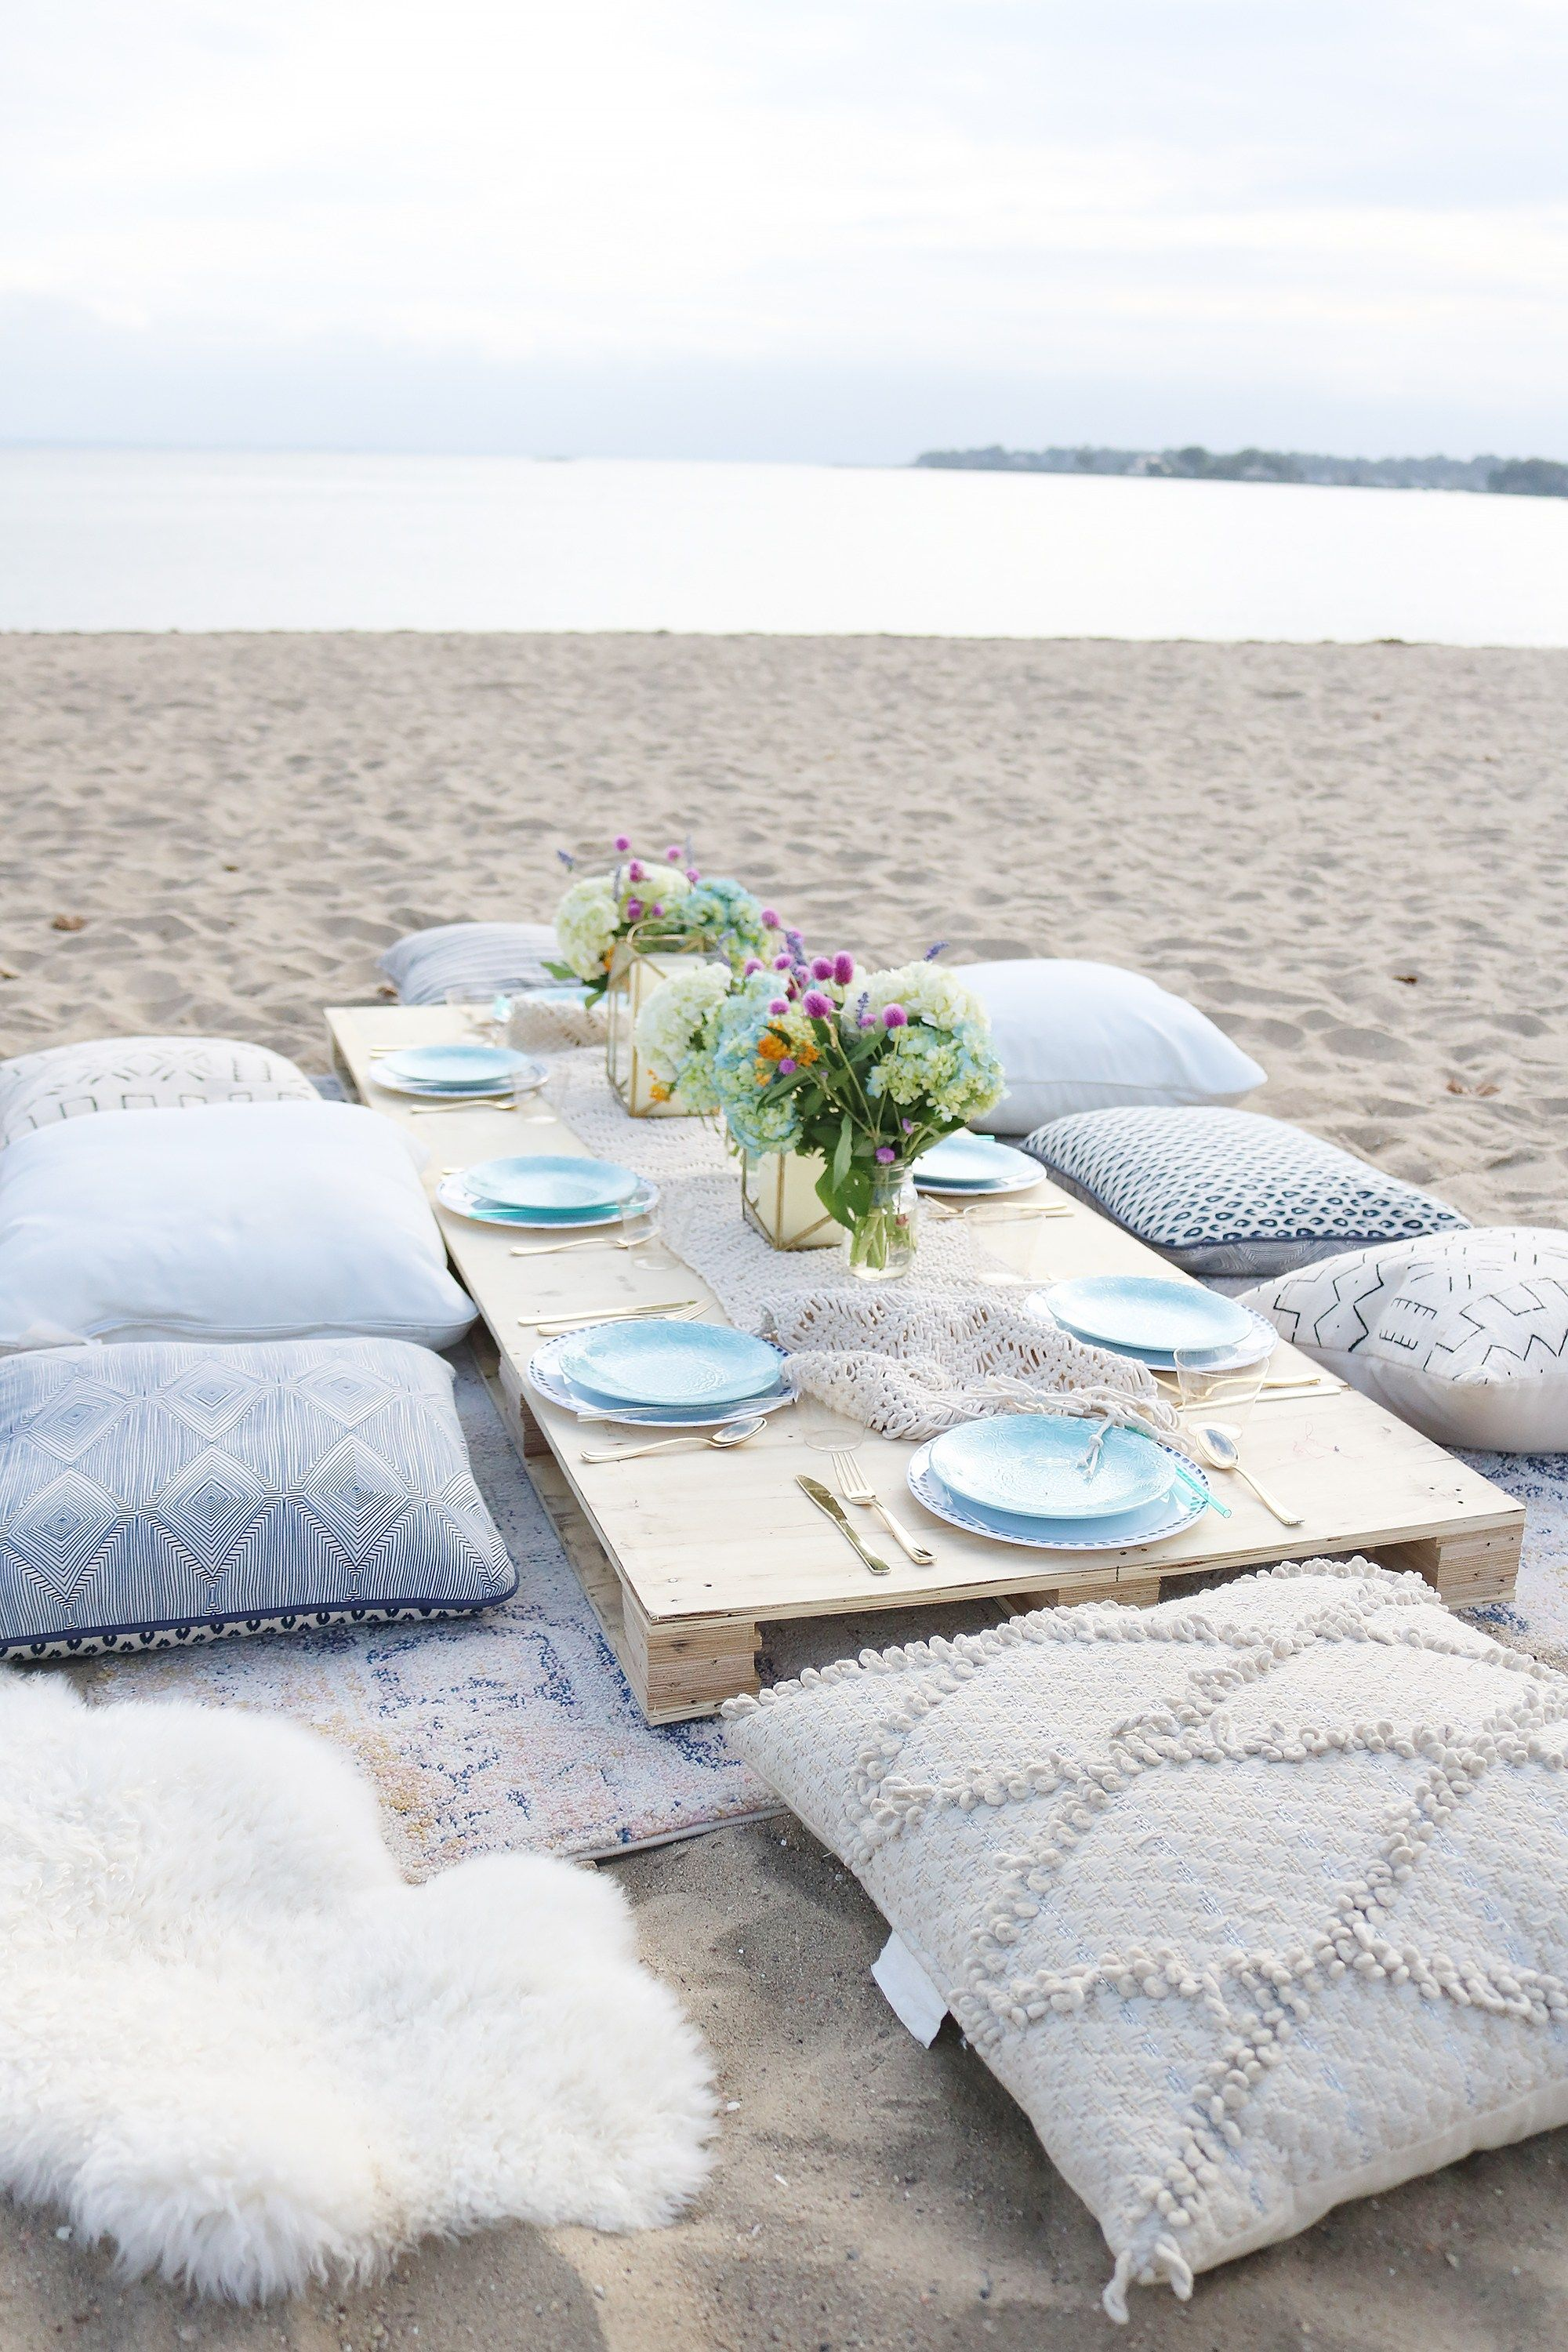 Birthday Beach Dinner Darling Darleen A Lifestyle Design Blog Beach Dinner Beach Picnic Party Beach Dinner Parties